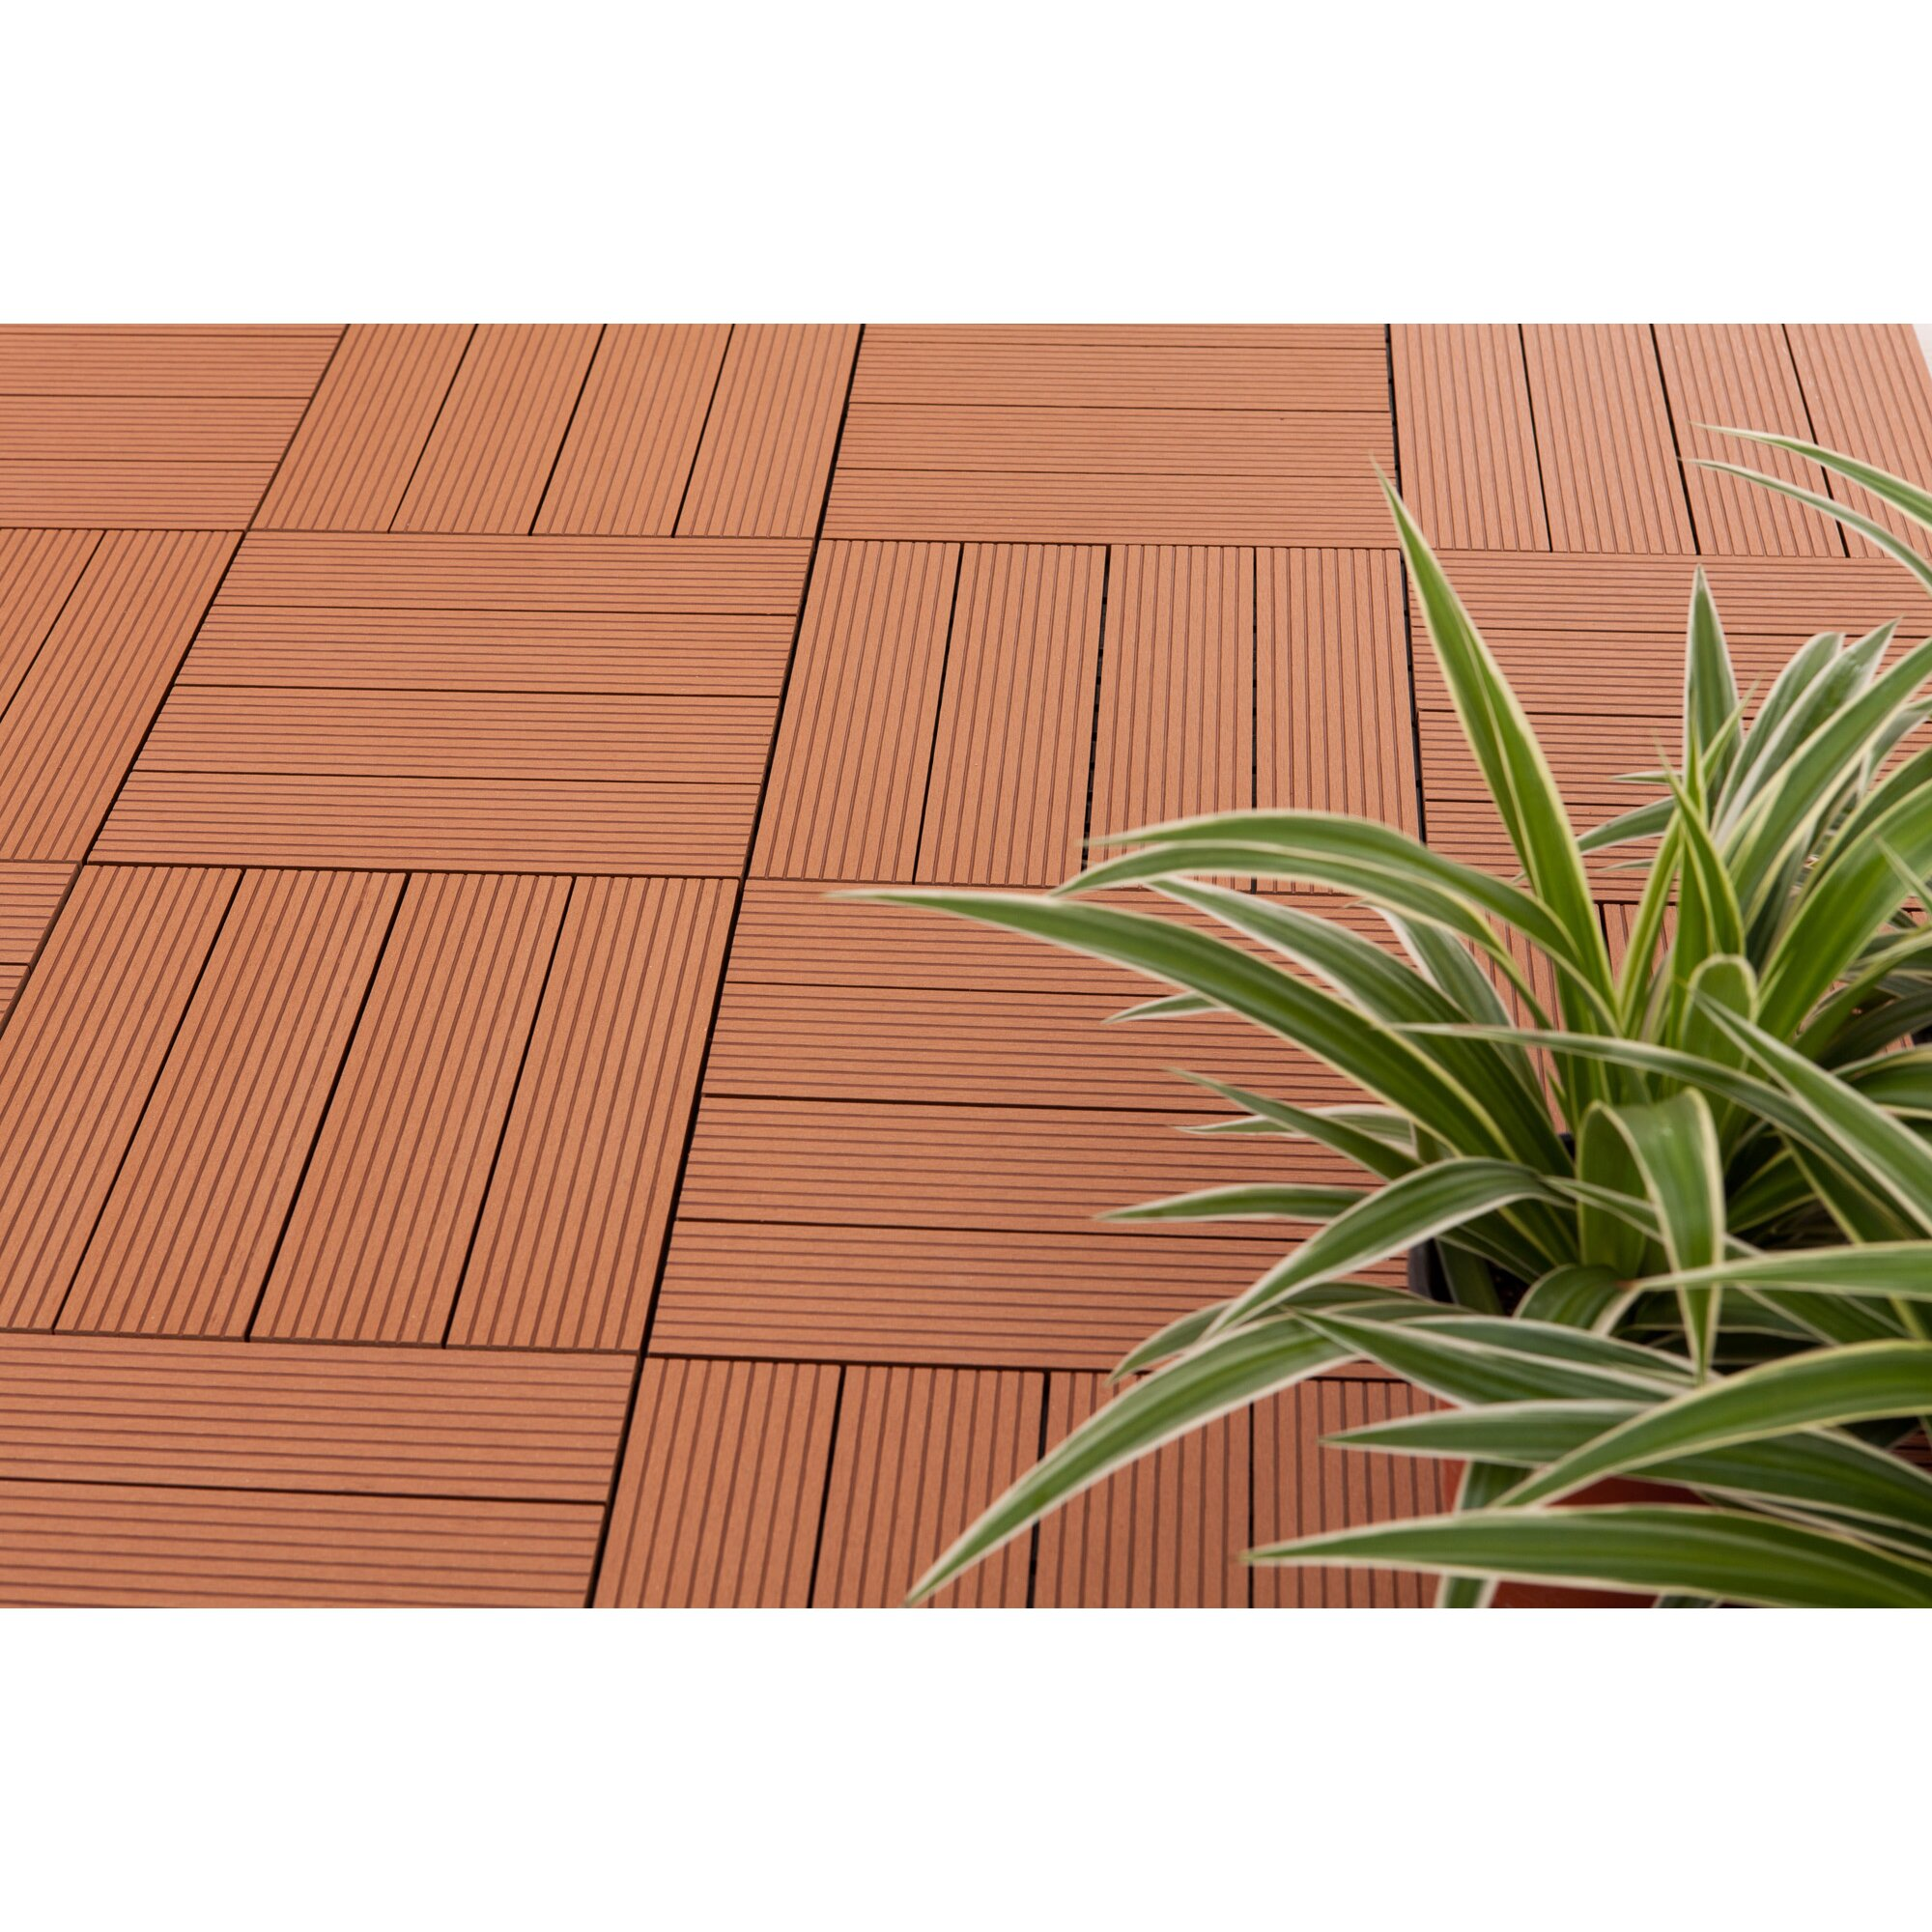 Vifah Composite Teak 12 Quot X 12 Quot Interlocking Deck Tiles